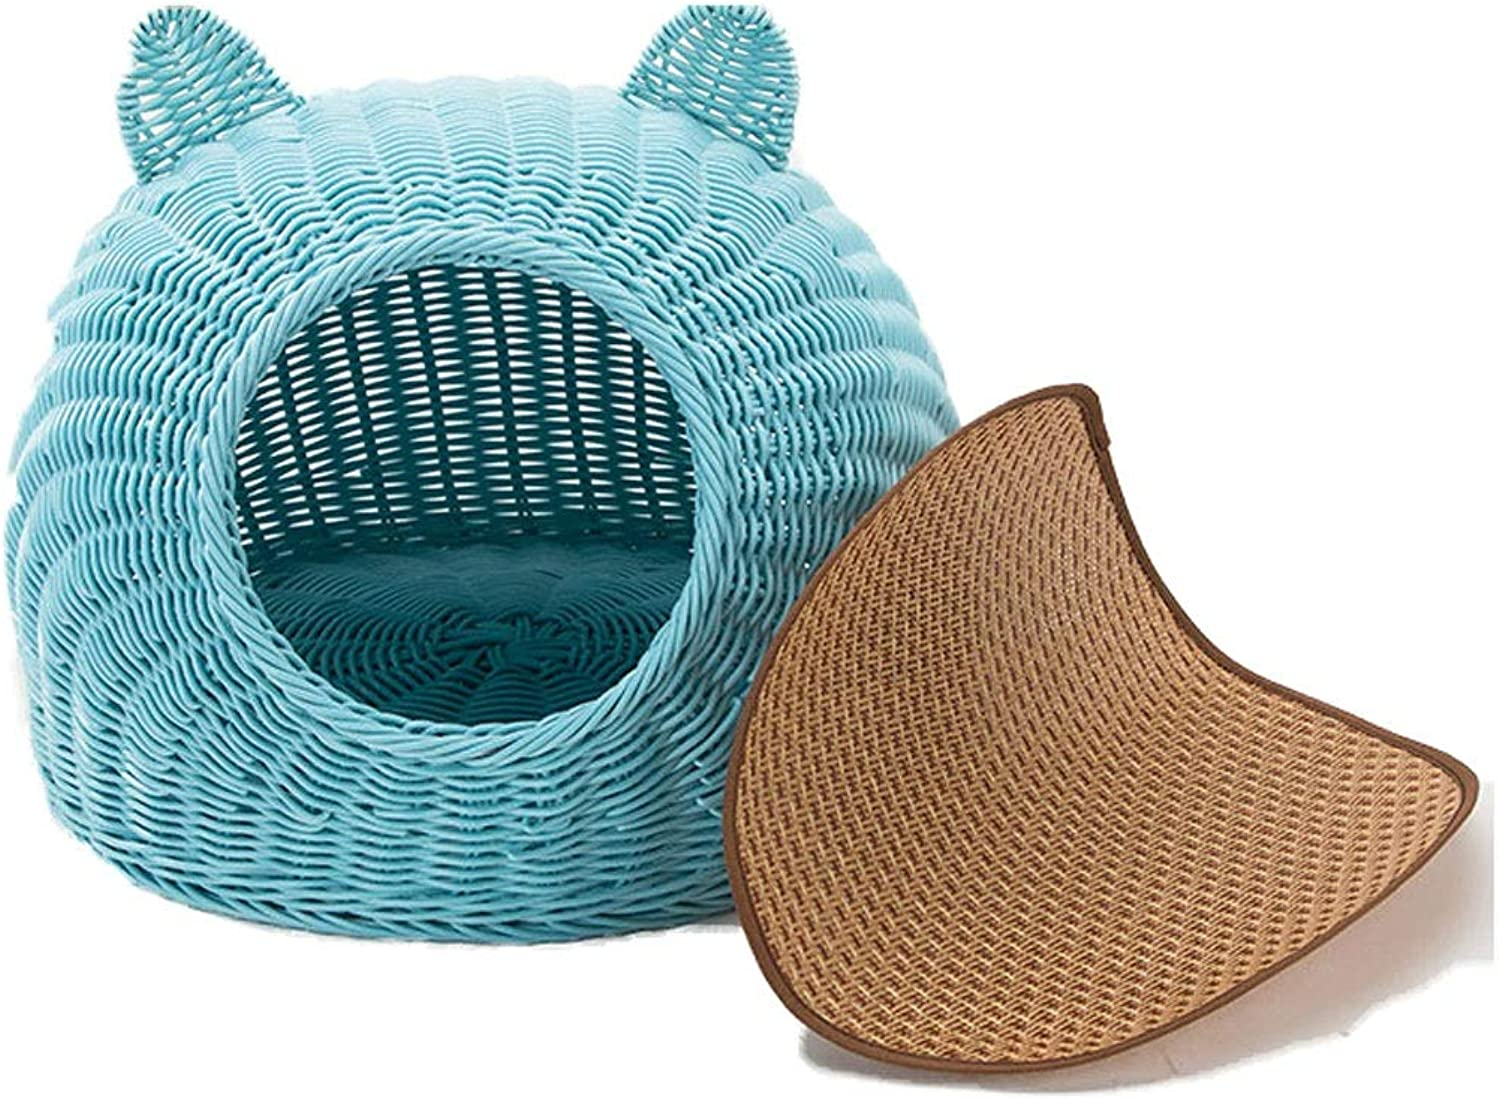 Cute Style Cat Bed for Indoor Cats  a Covered Modern Cat Hideaway Hut of Rattan Houses Pets in Dome Basket, Washable (color   bluee, Size   M)